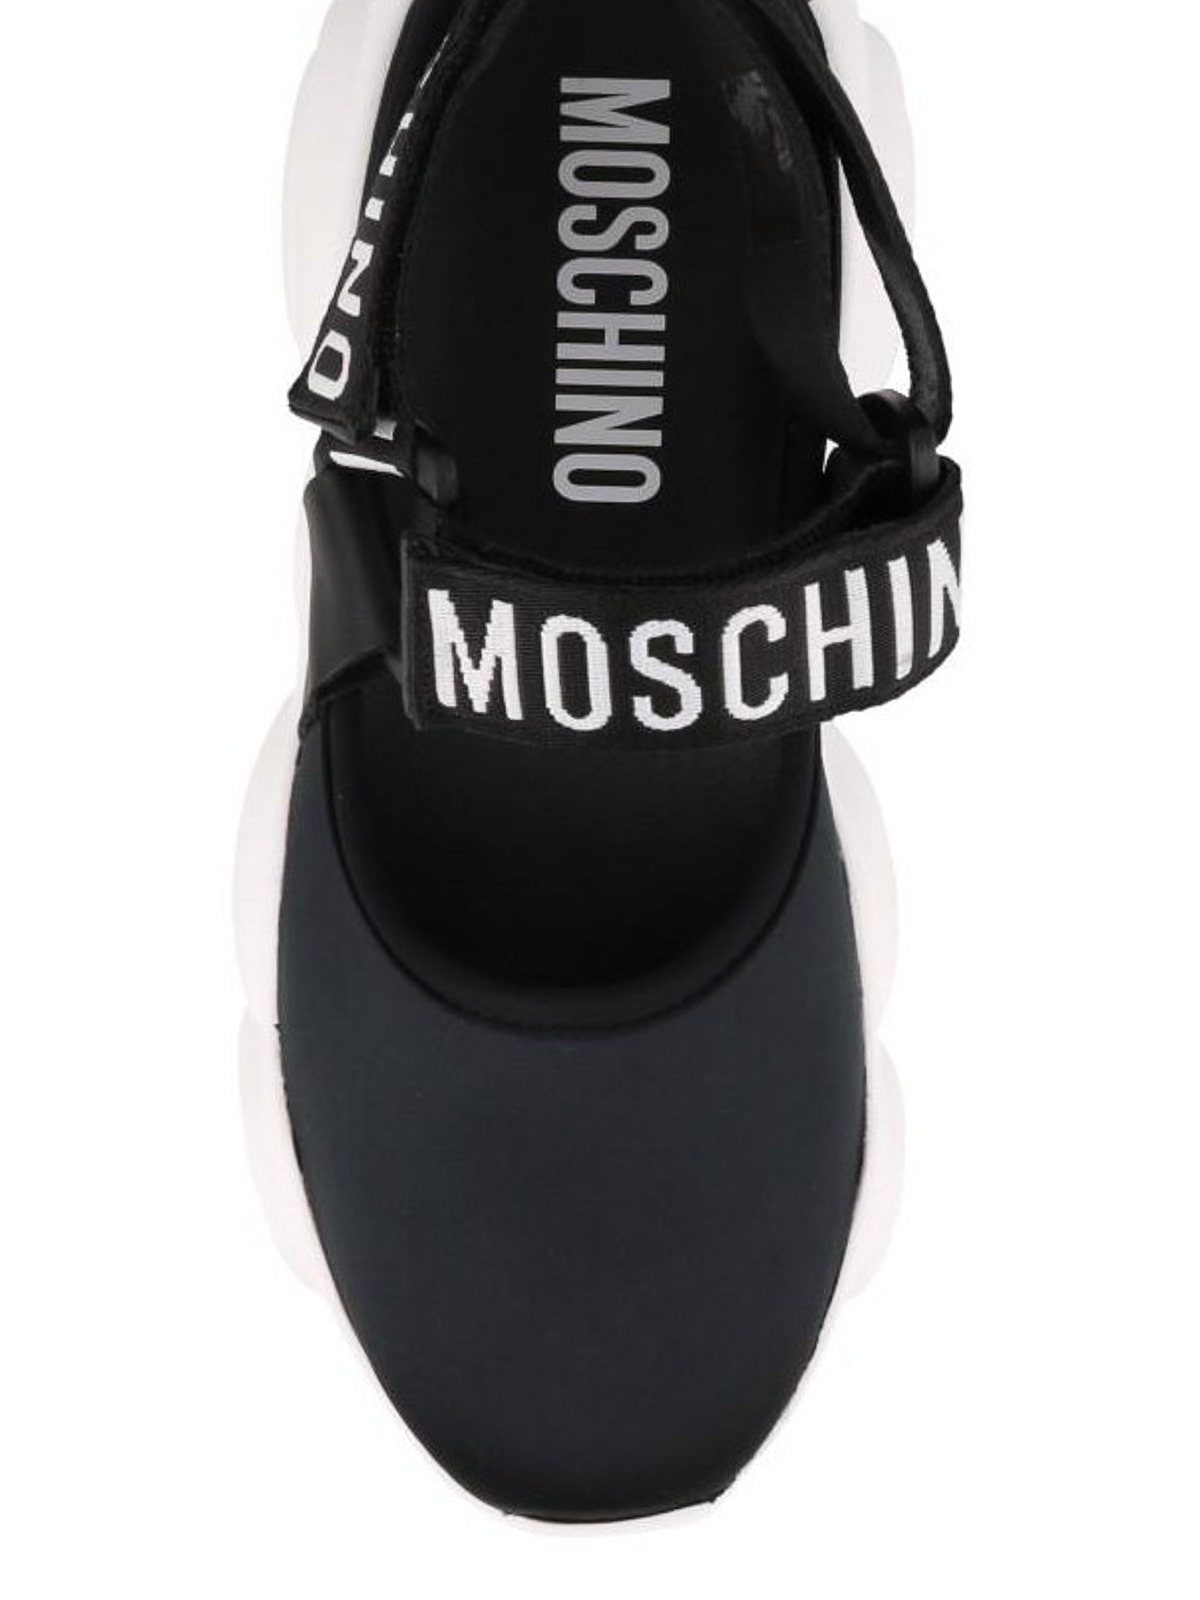 Ma15103g17 Moschino Ml0000 Teddy Run Sandalias QxBshdrtC